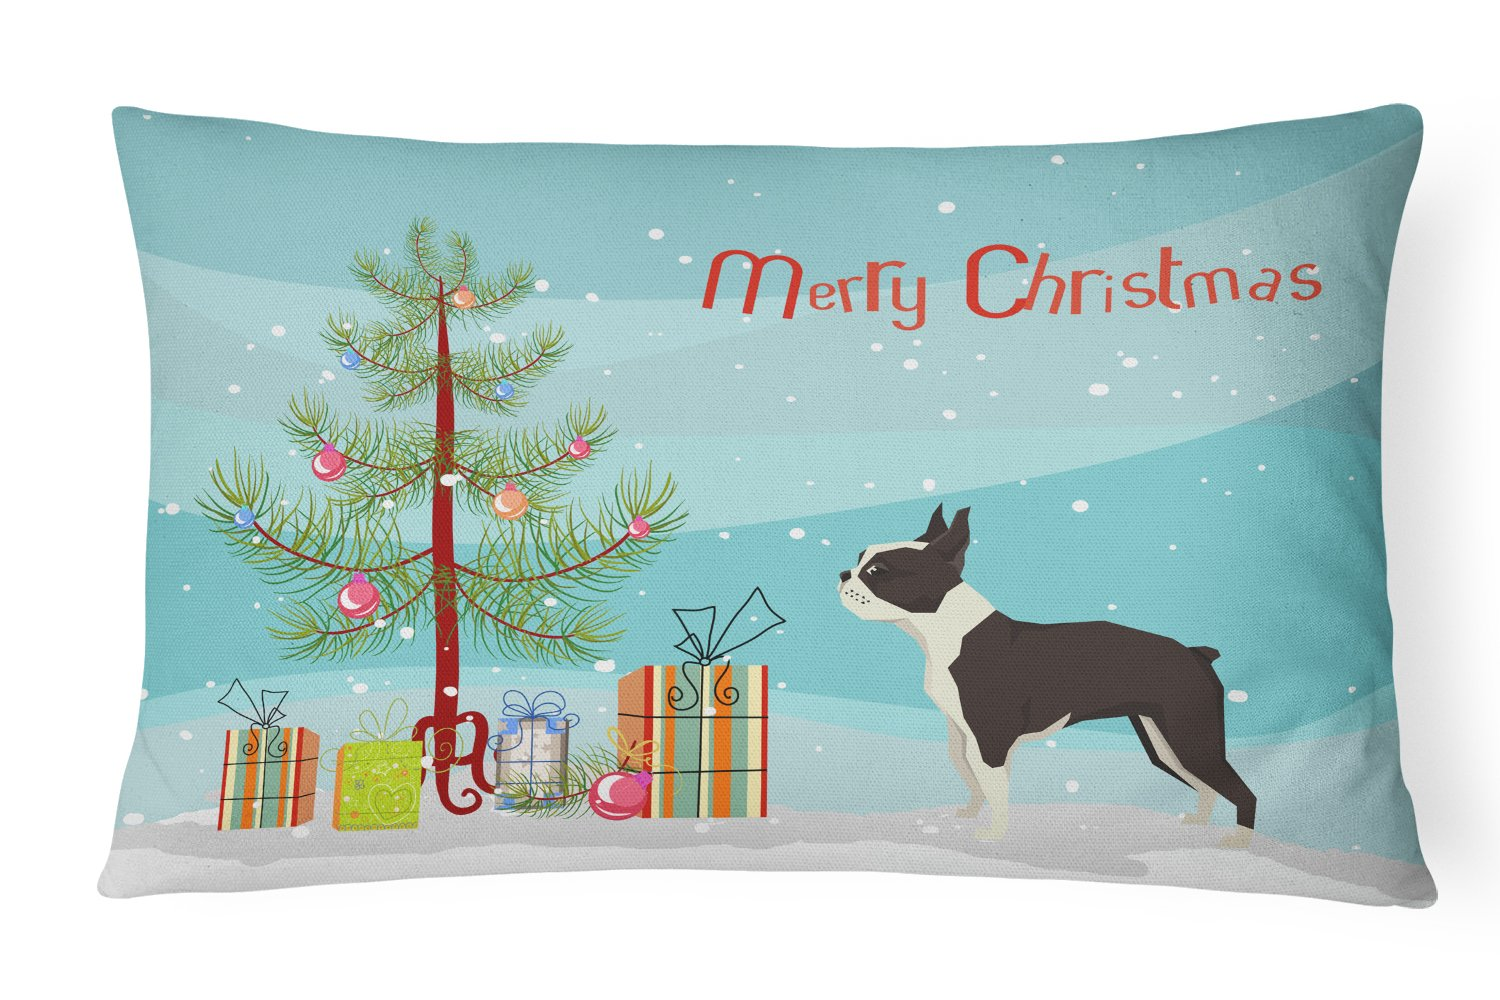 Boston Terrier Christmas Tree Canvas Fabric Decorative Pillow CK3525PW1216 by Caroline's Treasures